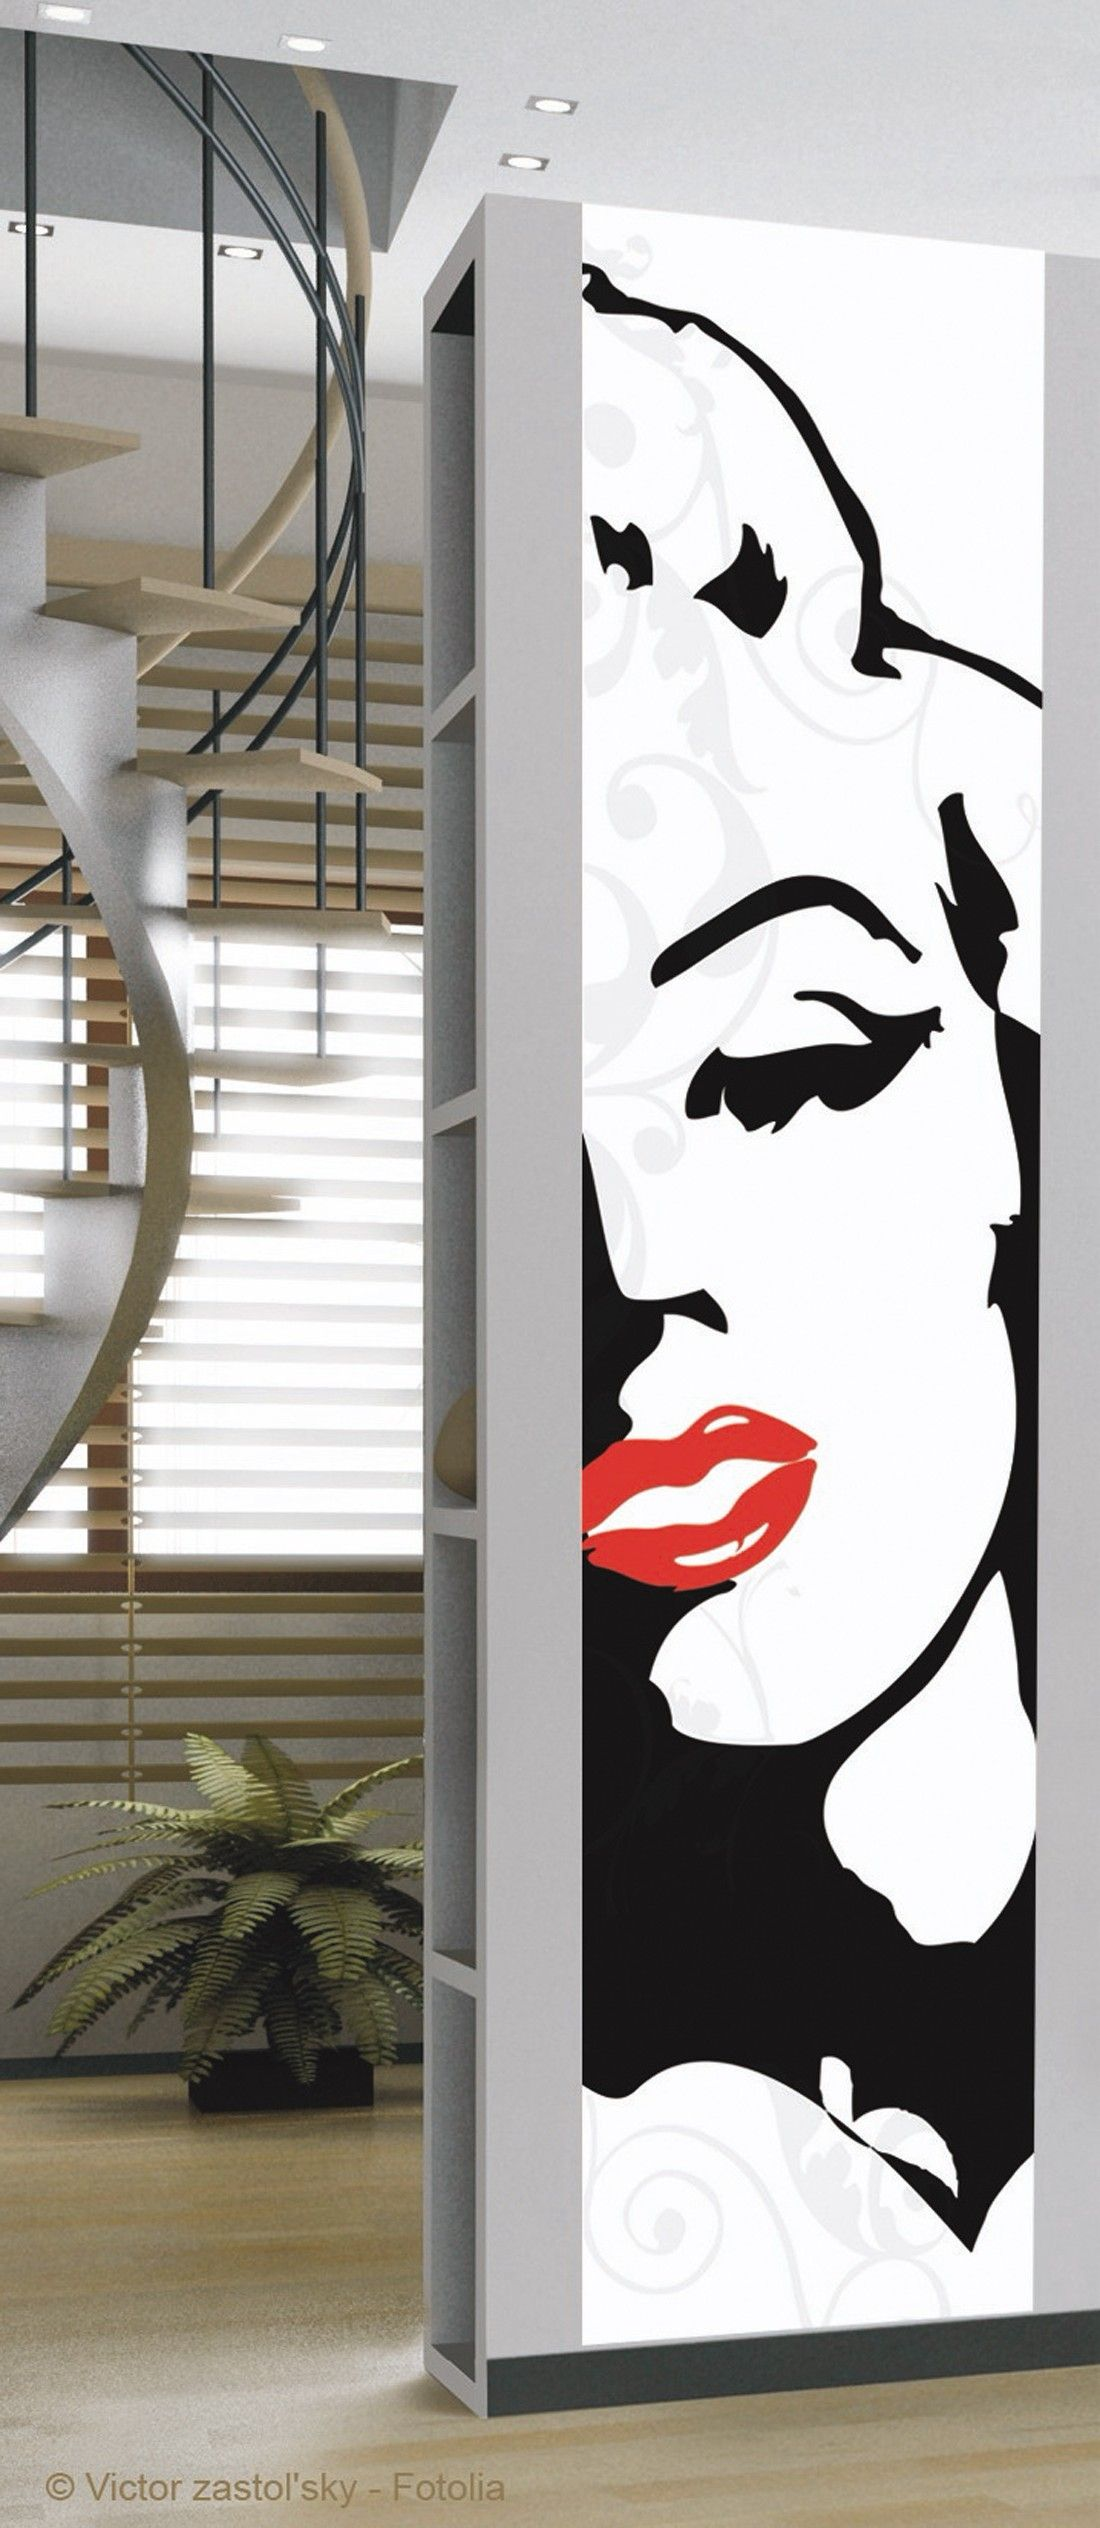 Marilyn sticker in creative wall art wallpaper direct for Plage stickers uk